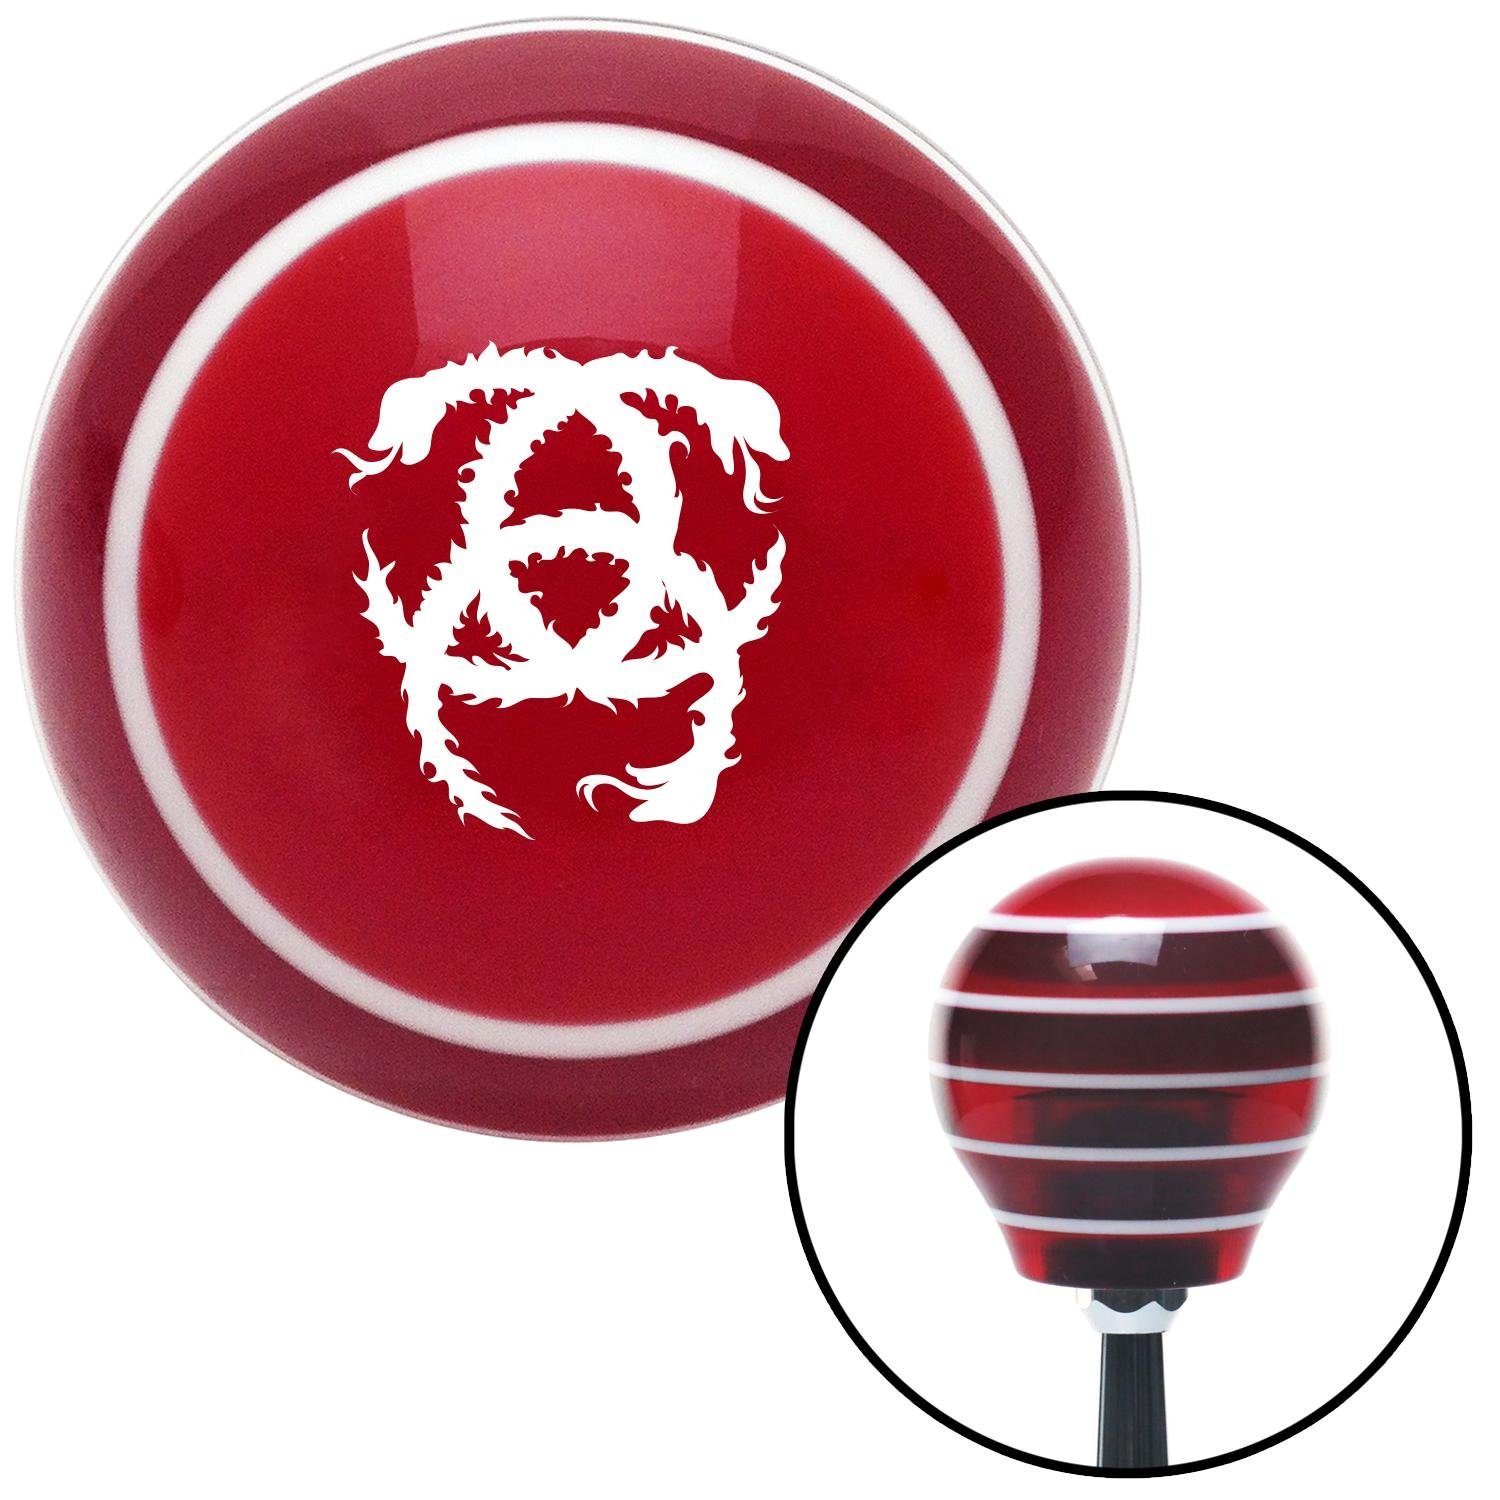 American Shifter 114071 Red Stripe Shift Knob with M16 x 1.5 Insert White Heraldic Snakes